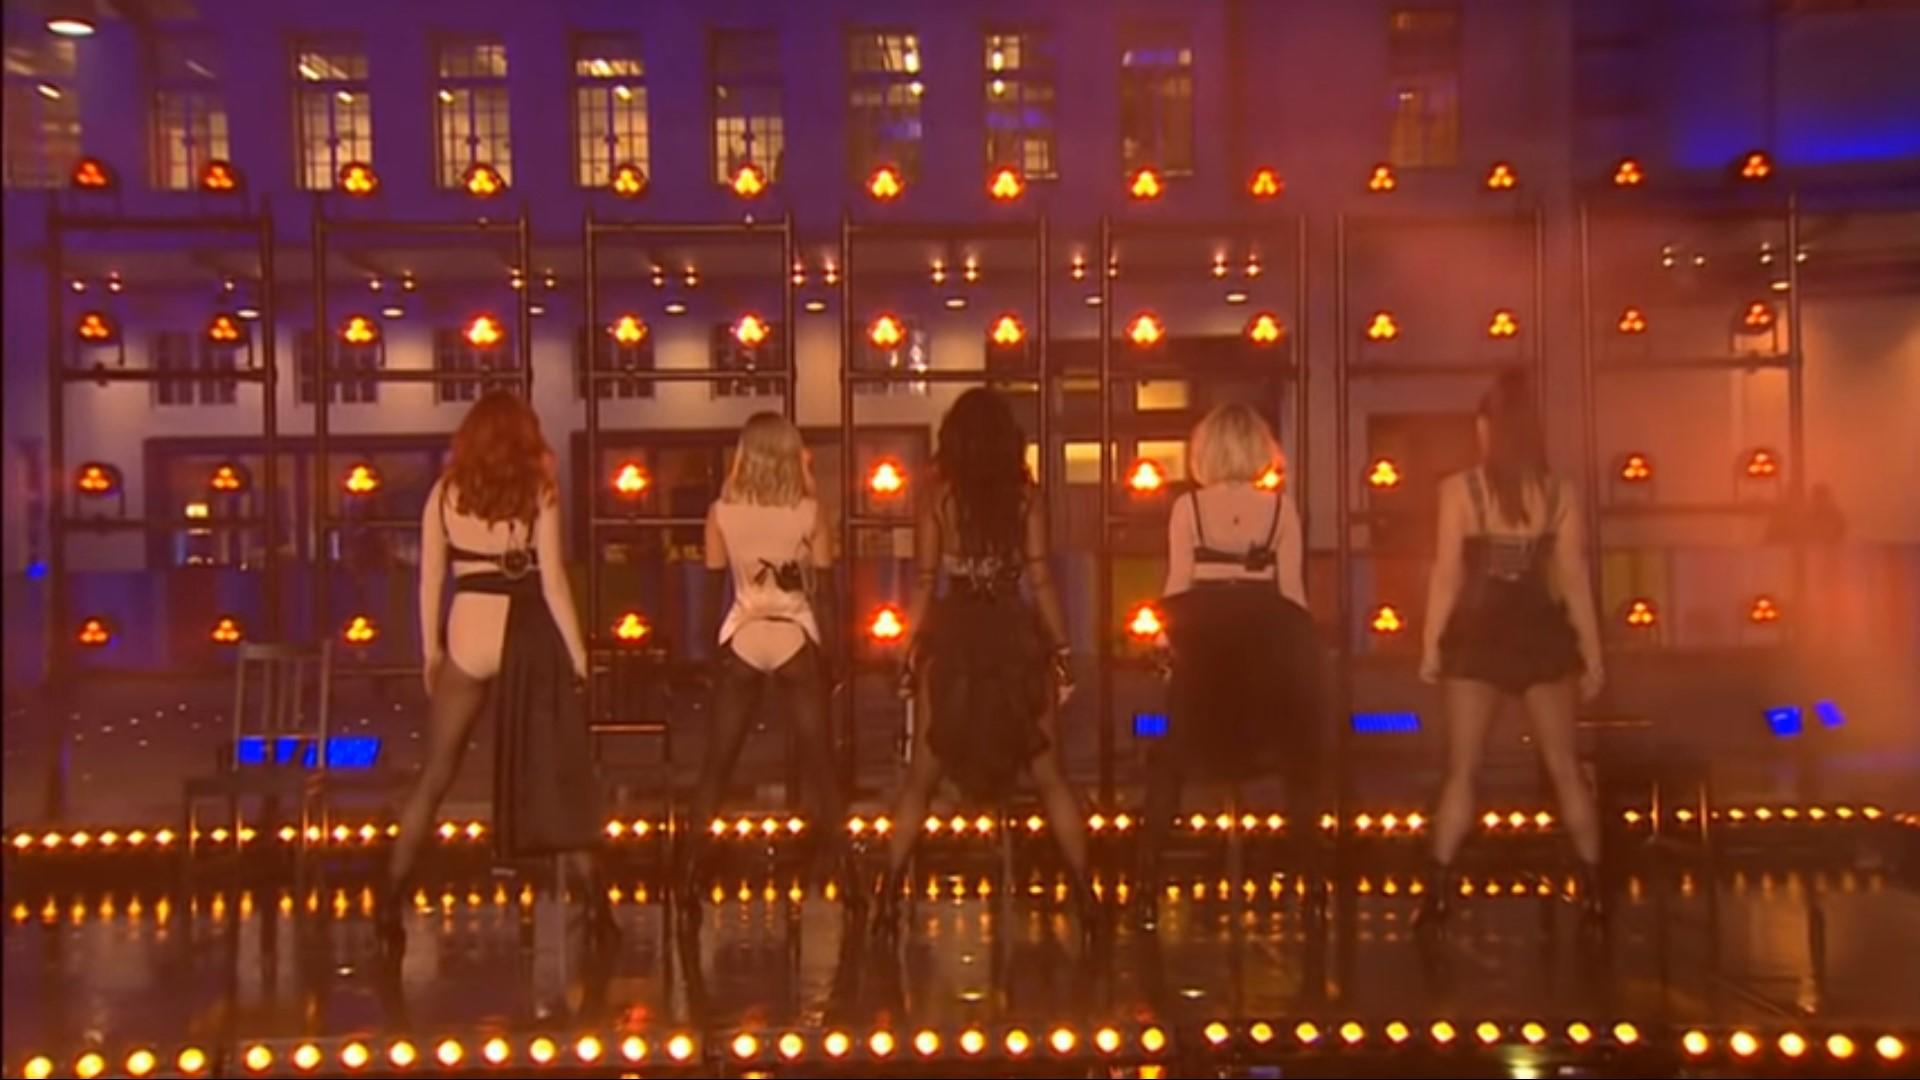 The Pussycat Dolls suffered from a major technical glitch while performing live on BBC's 'The One Show' on Wednesday 26 February (BBC One)